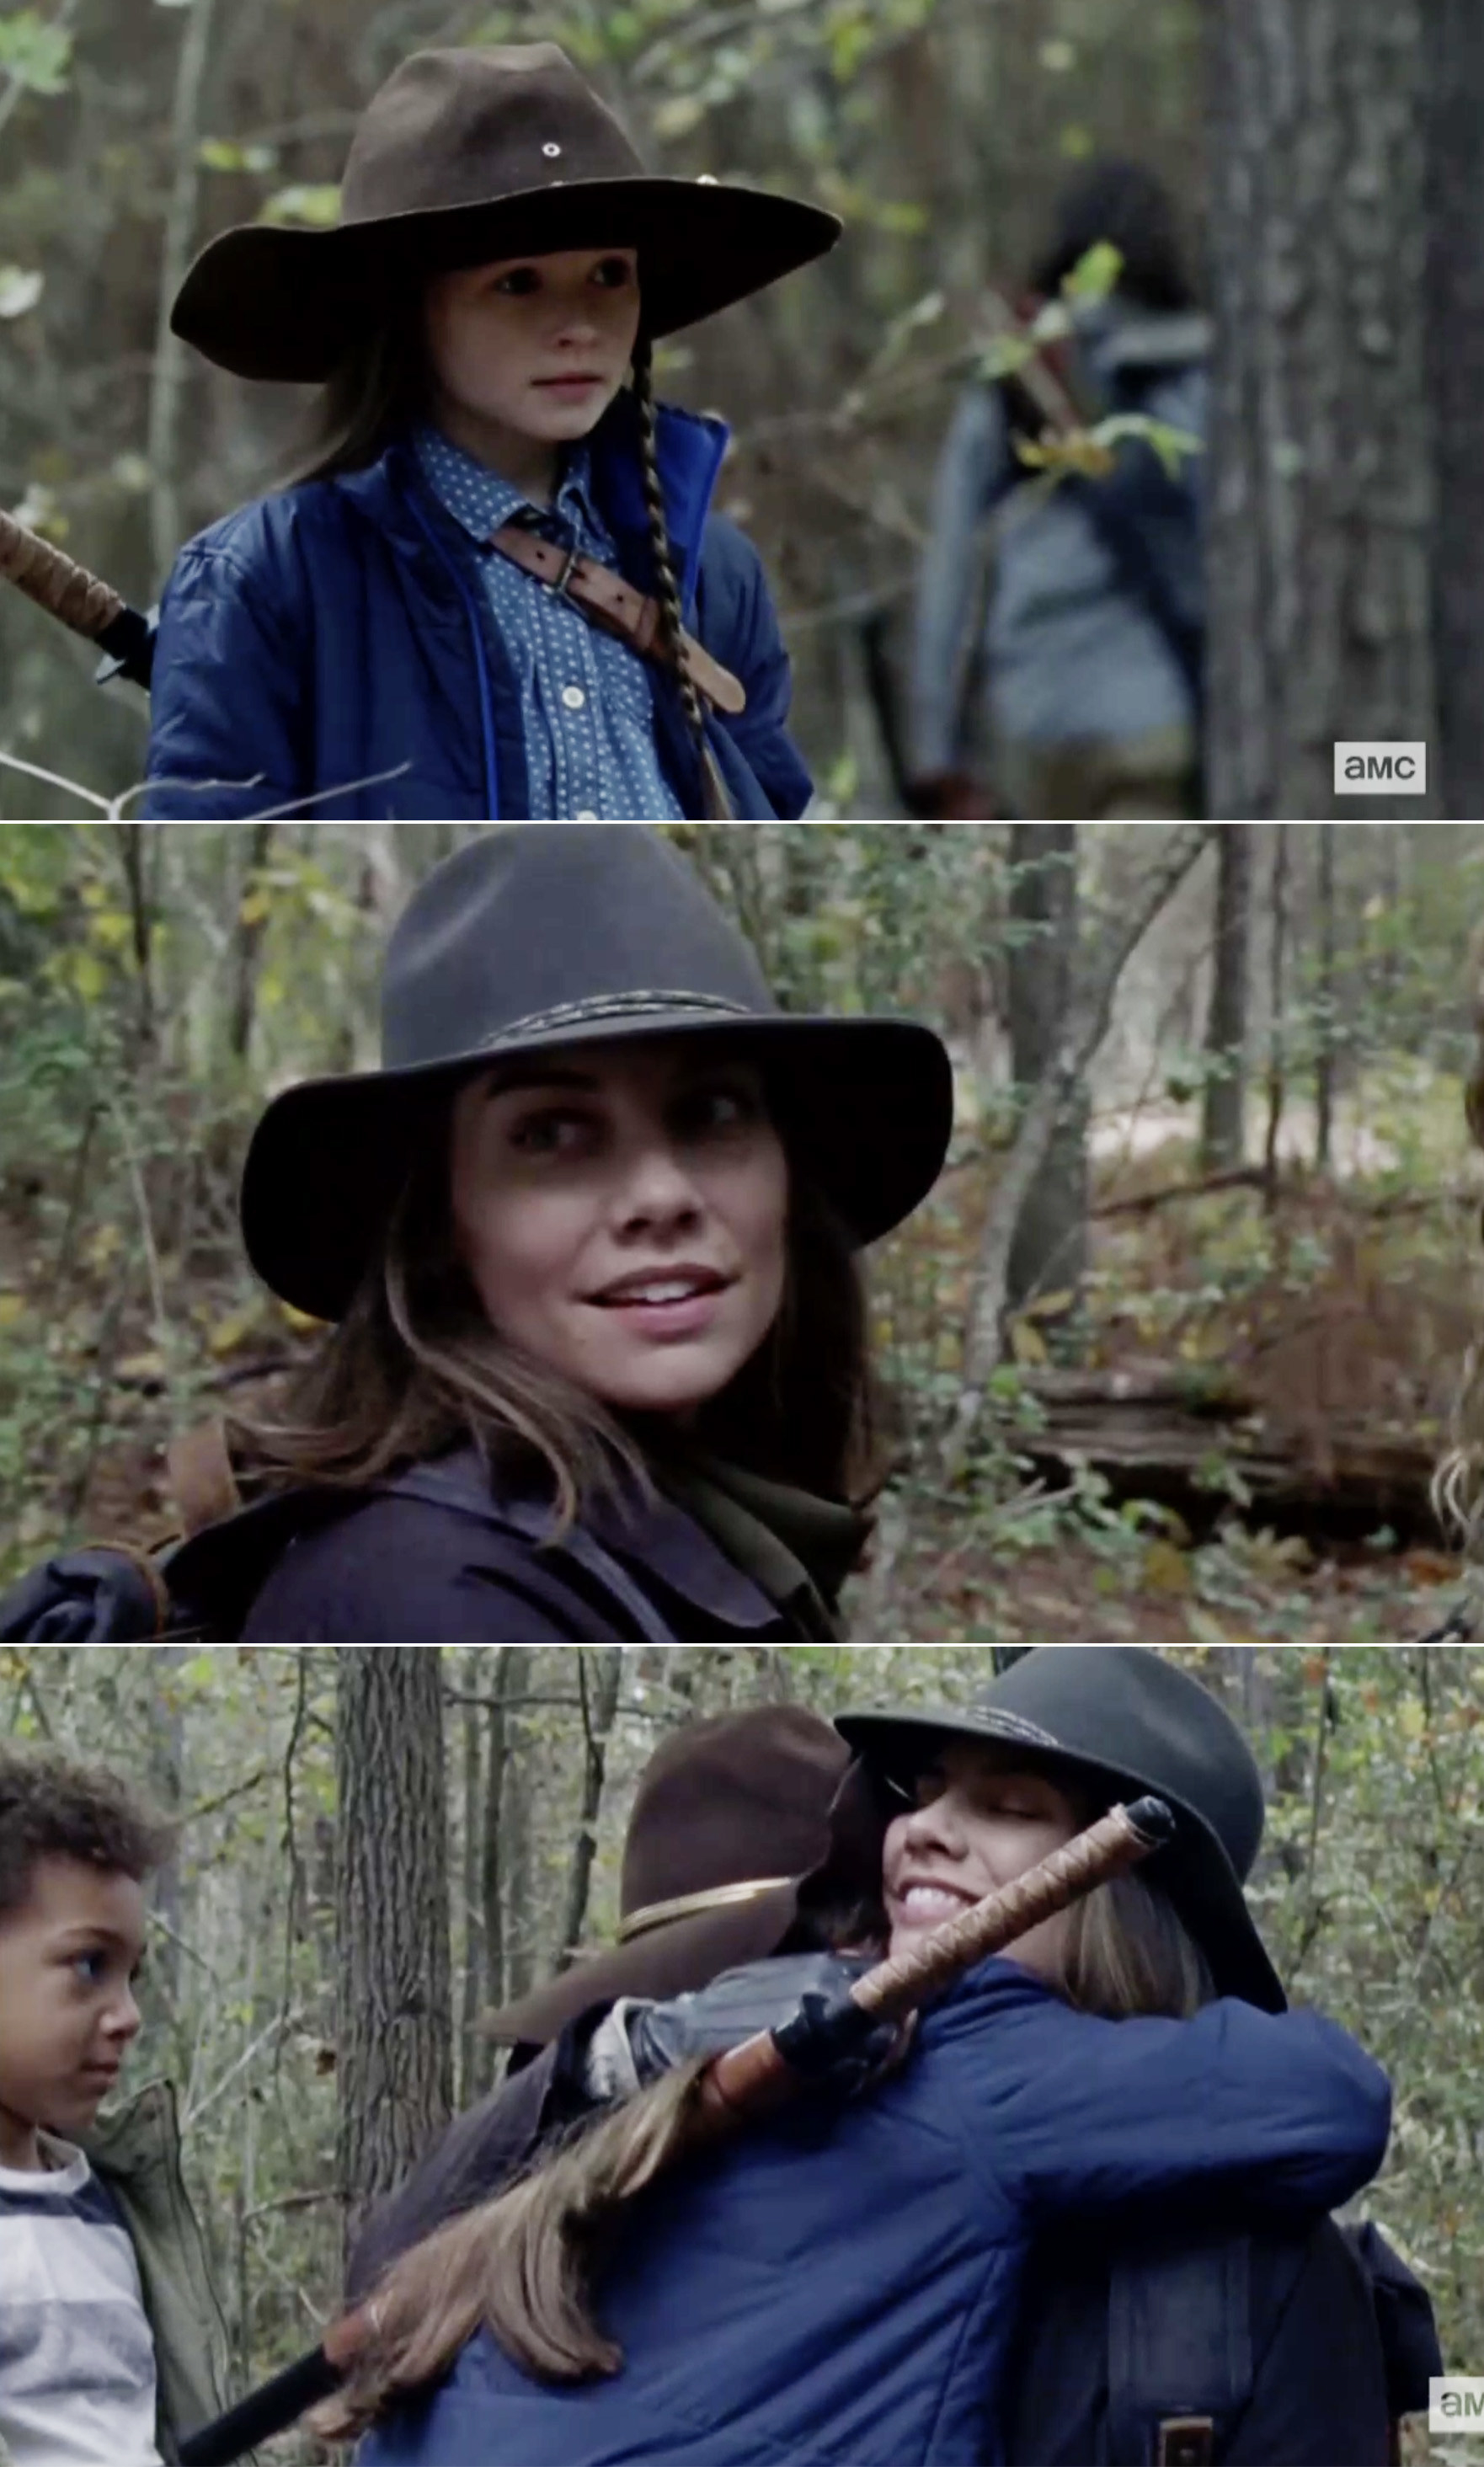 Maggie and Judith reuniting